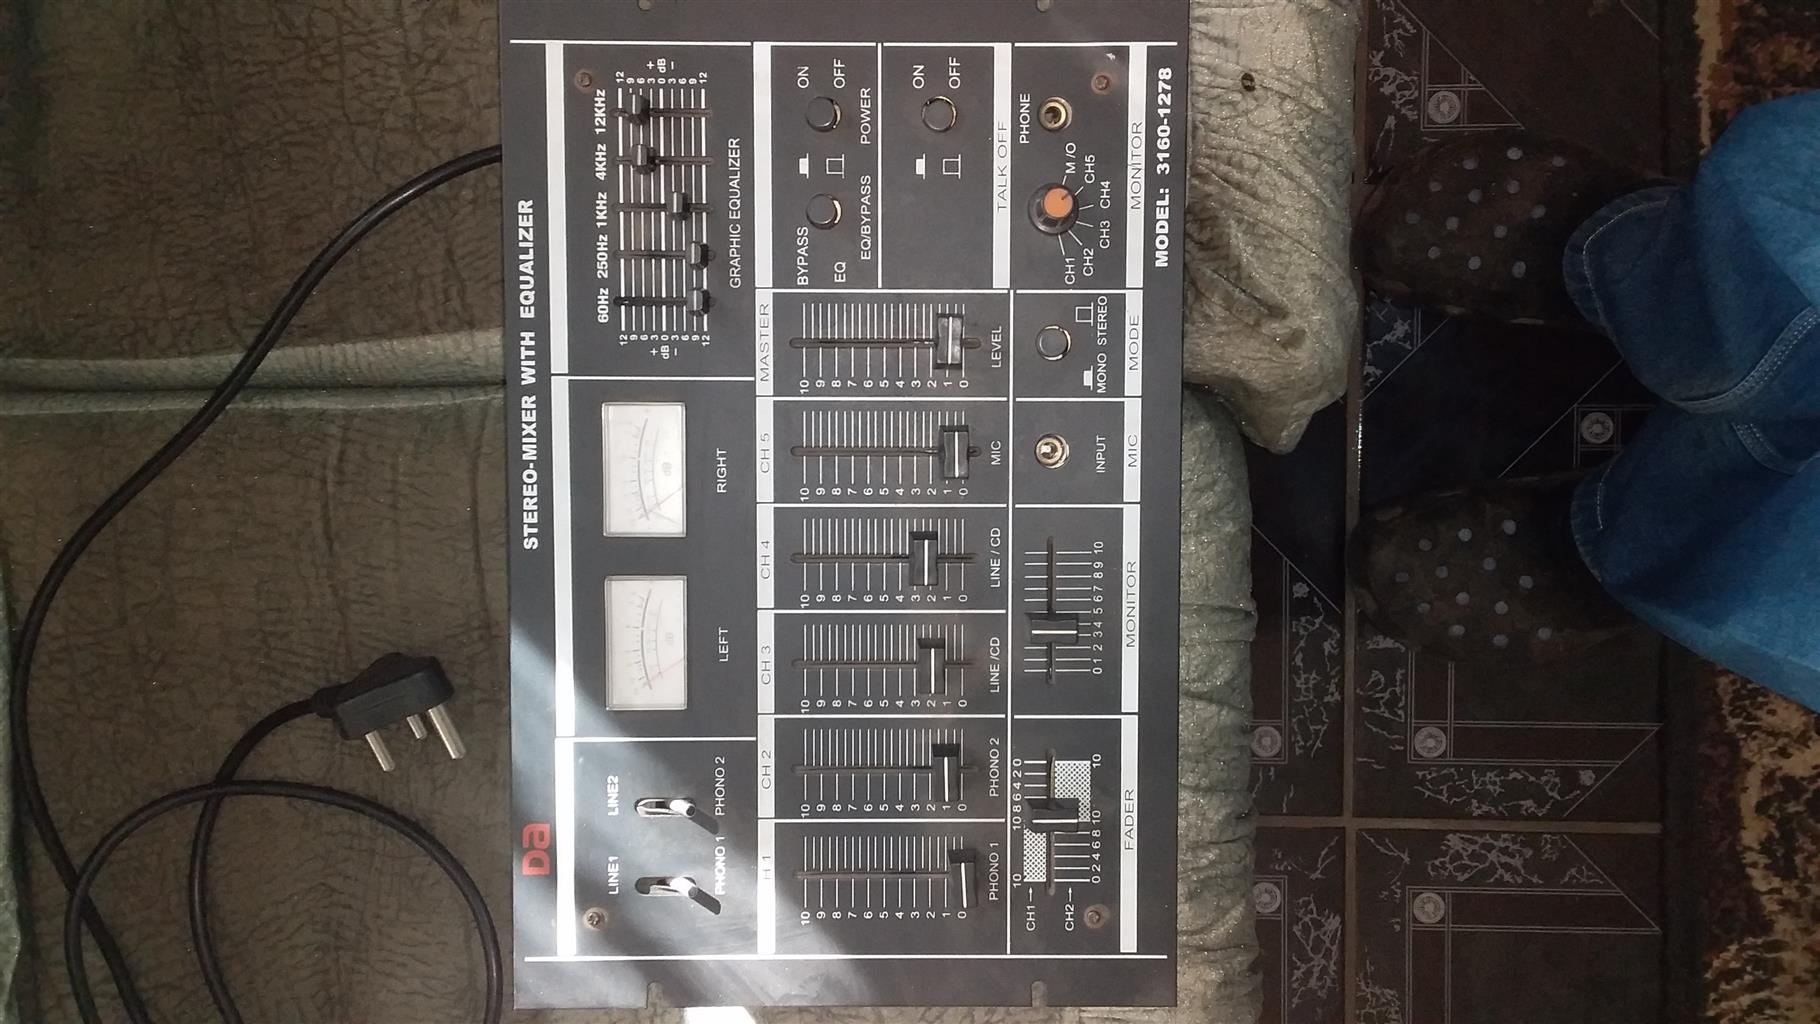 Stereo mixer with equalizer.